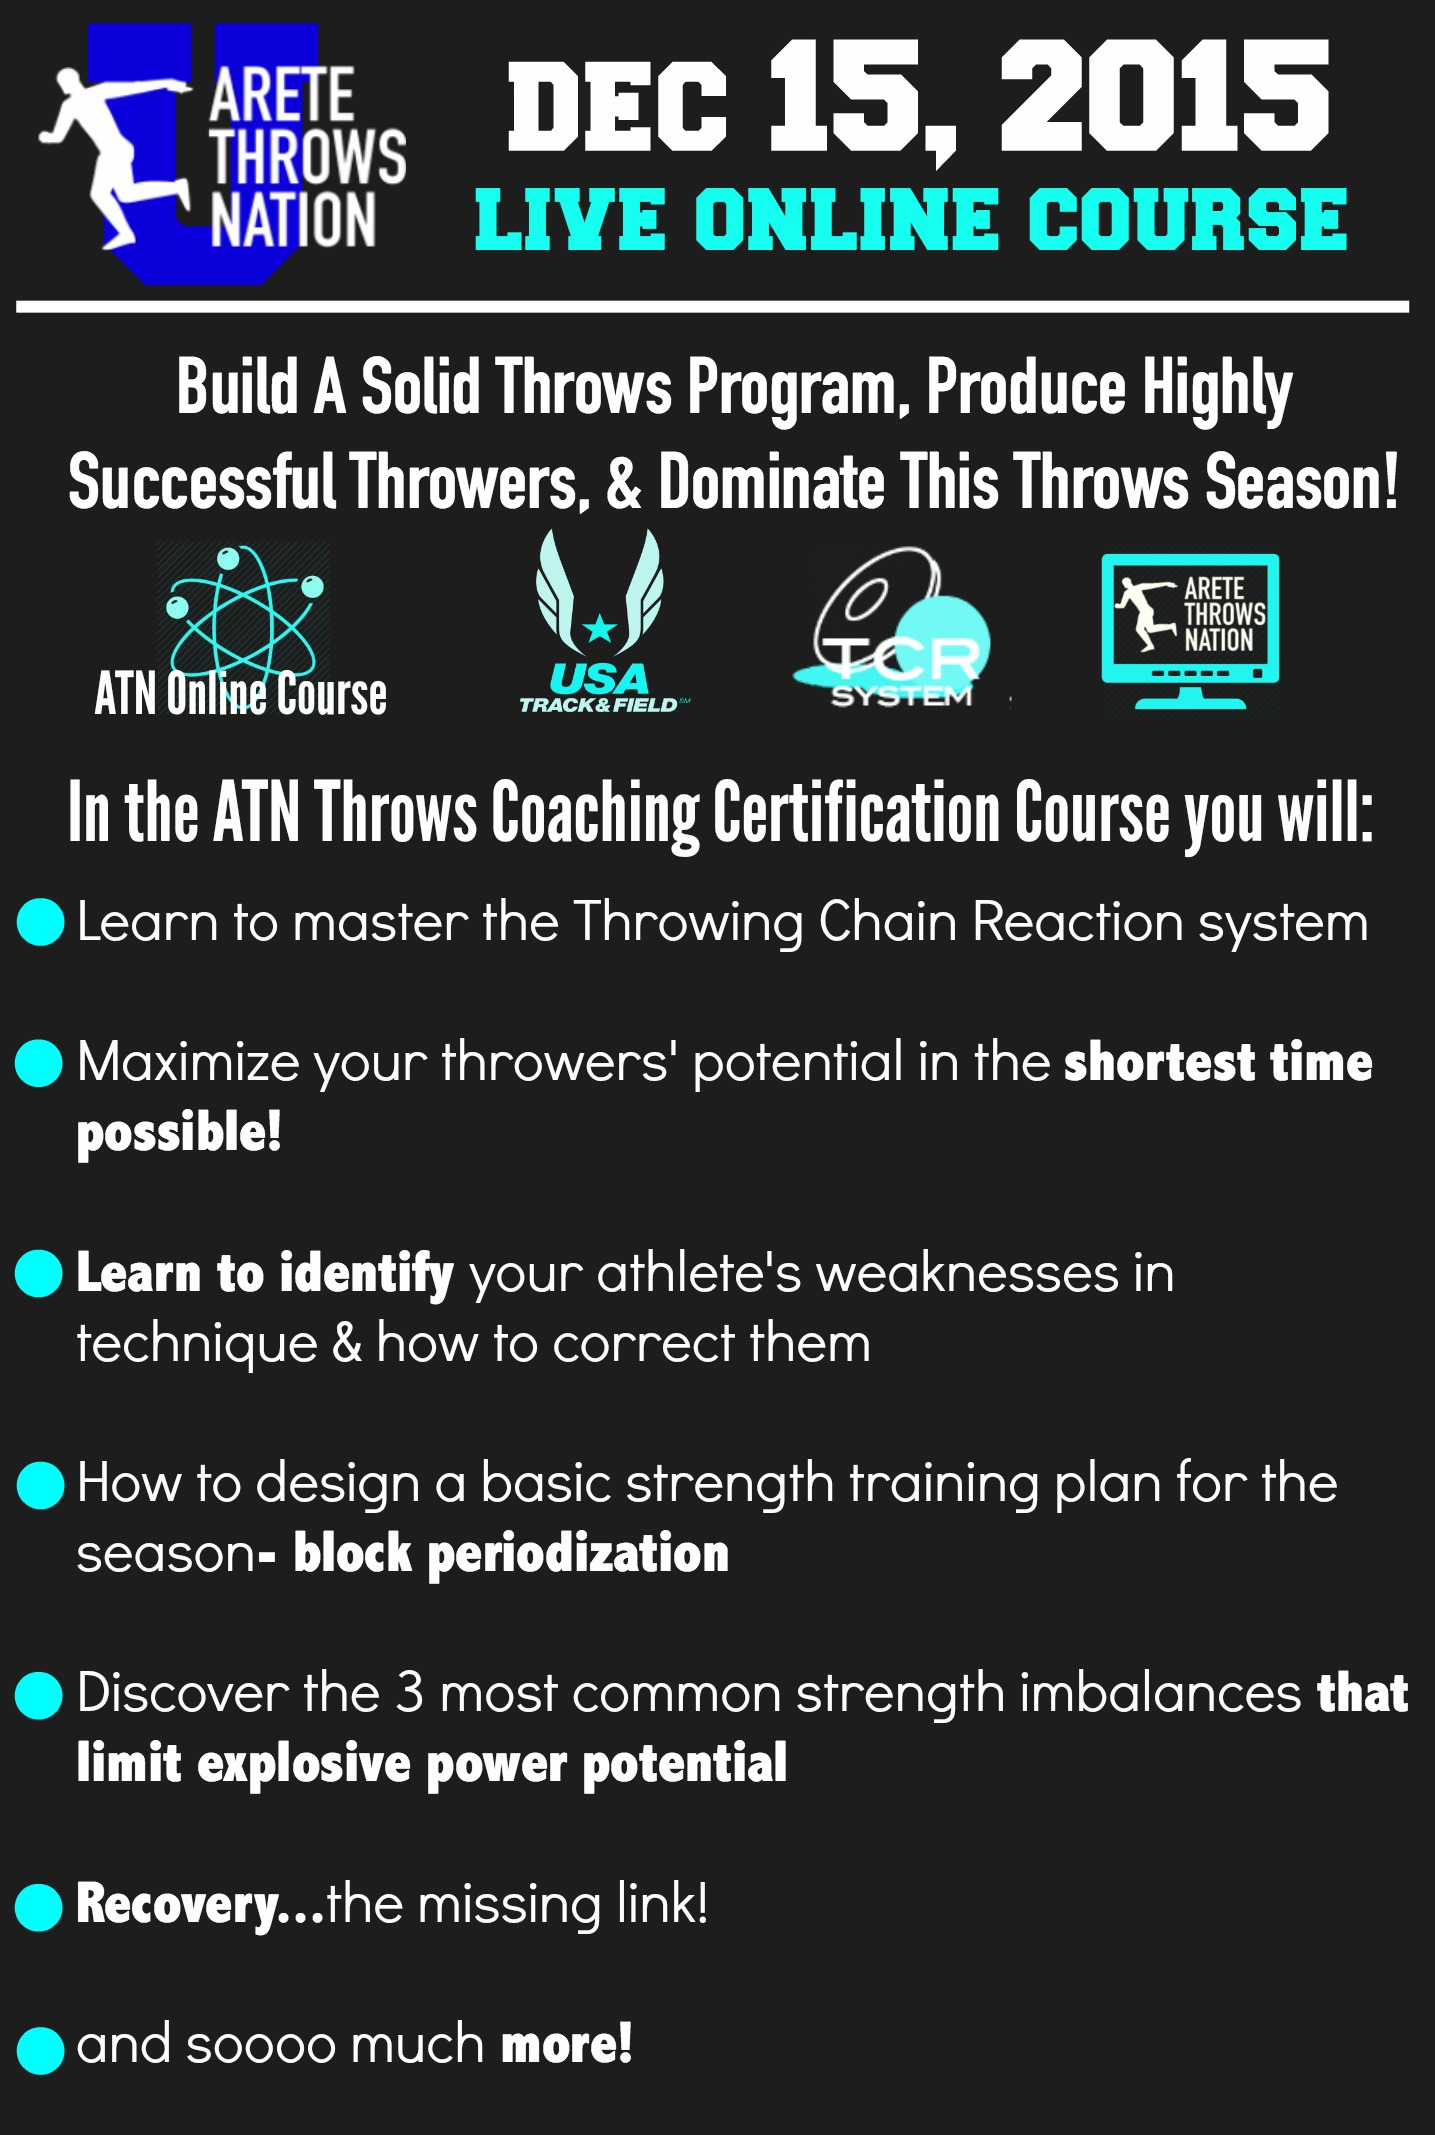 dec 15 online throws coaching certification - Shot Put and Discus ...